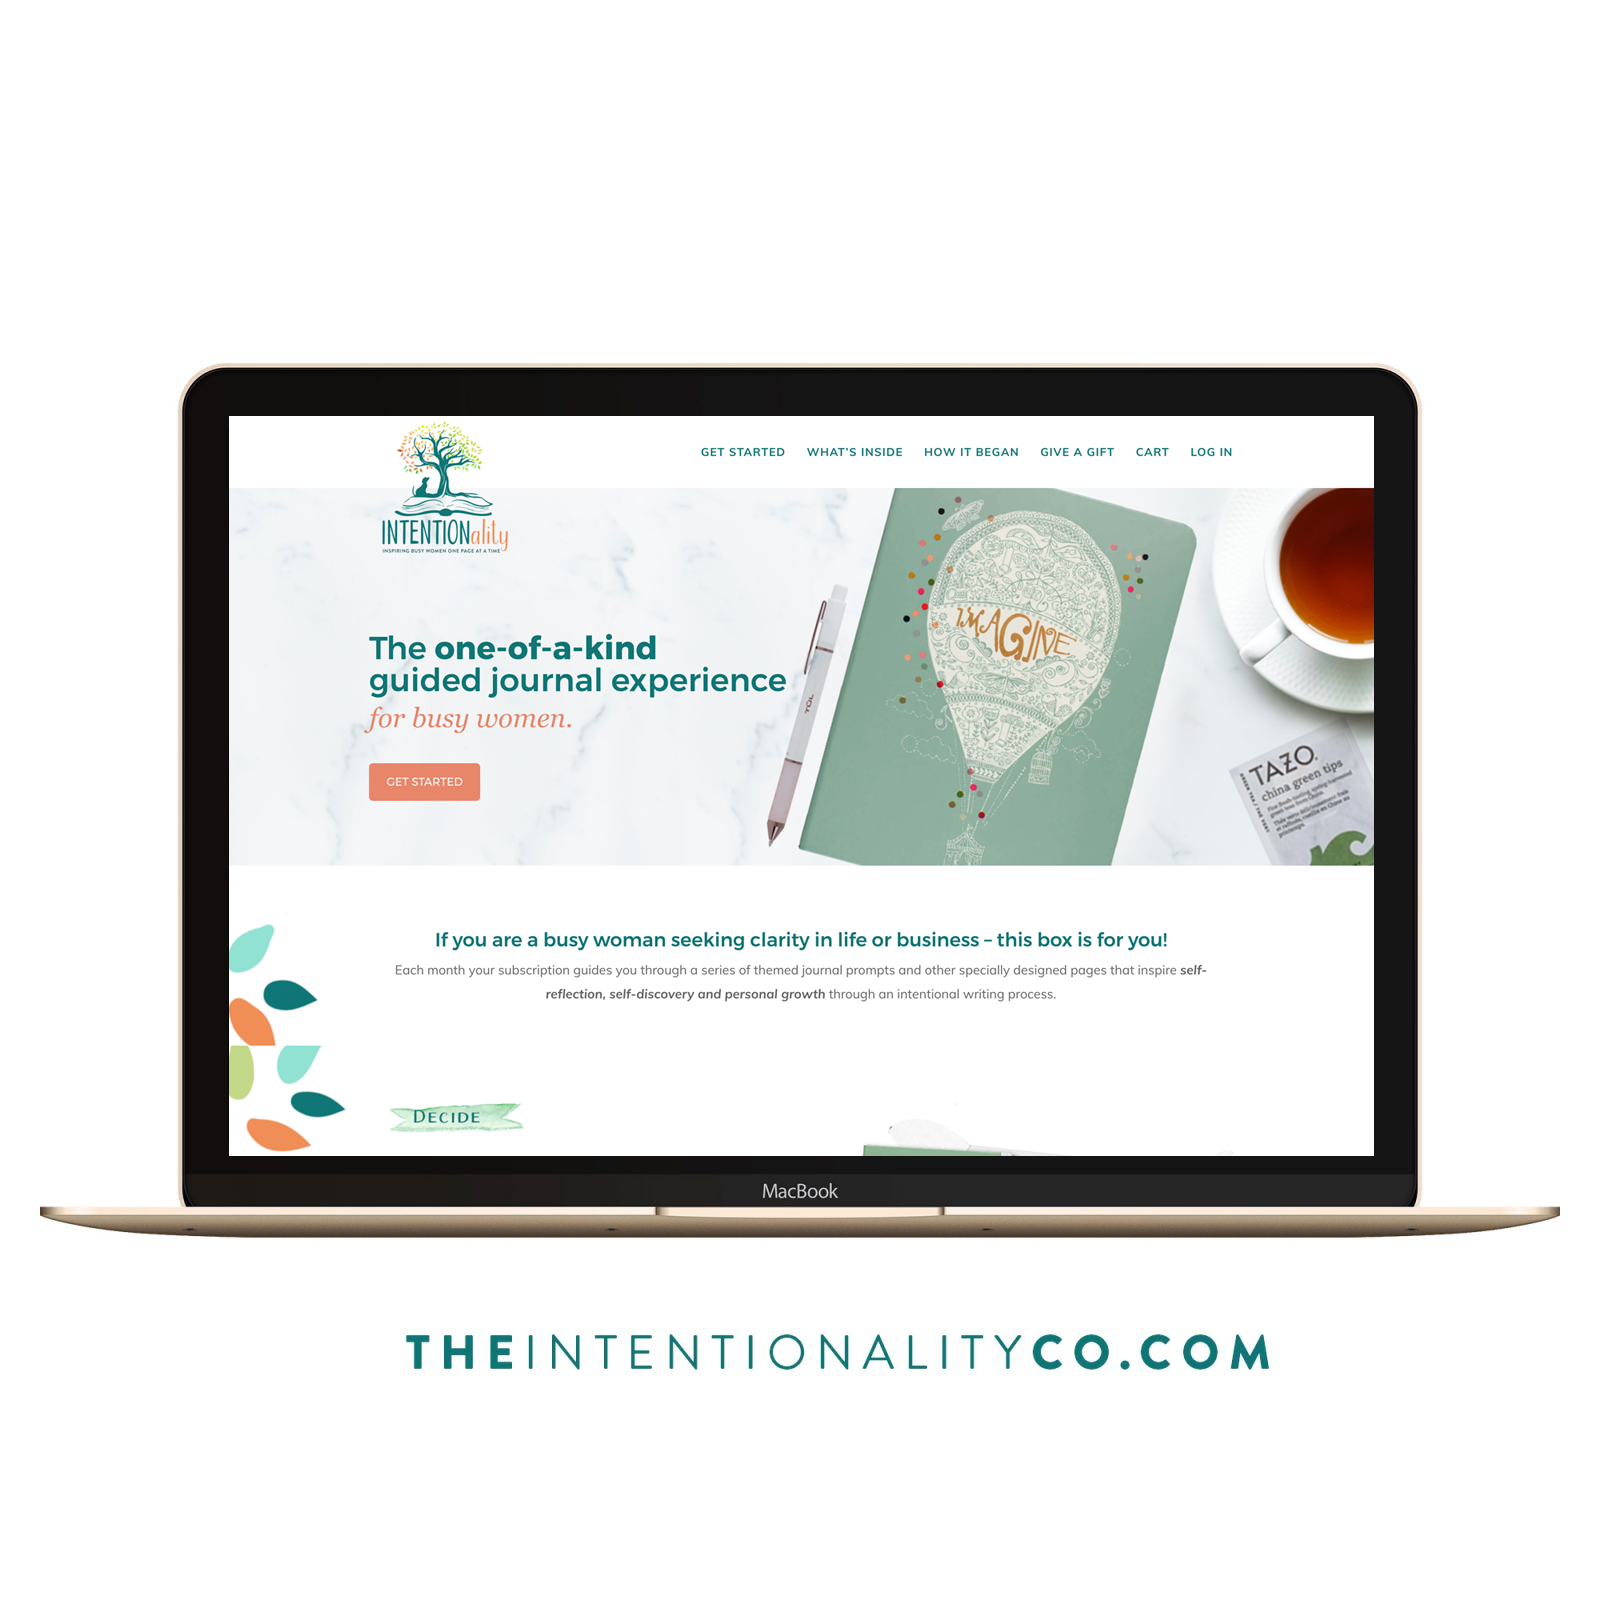 intentionality Box Subscription Box Website Design